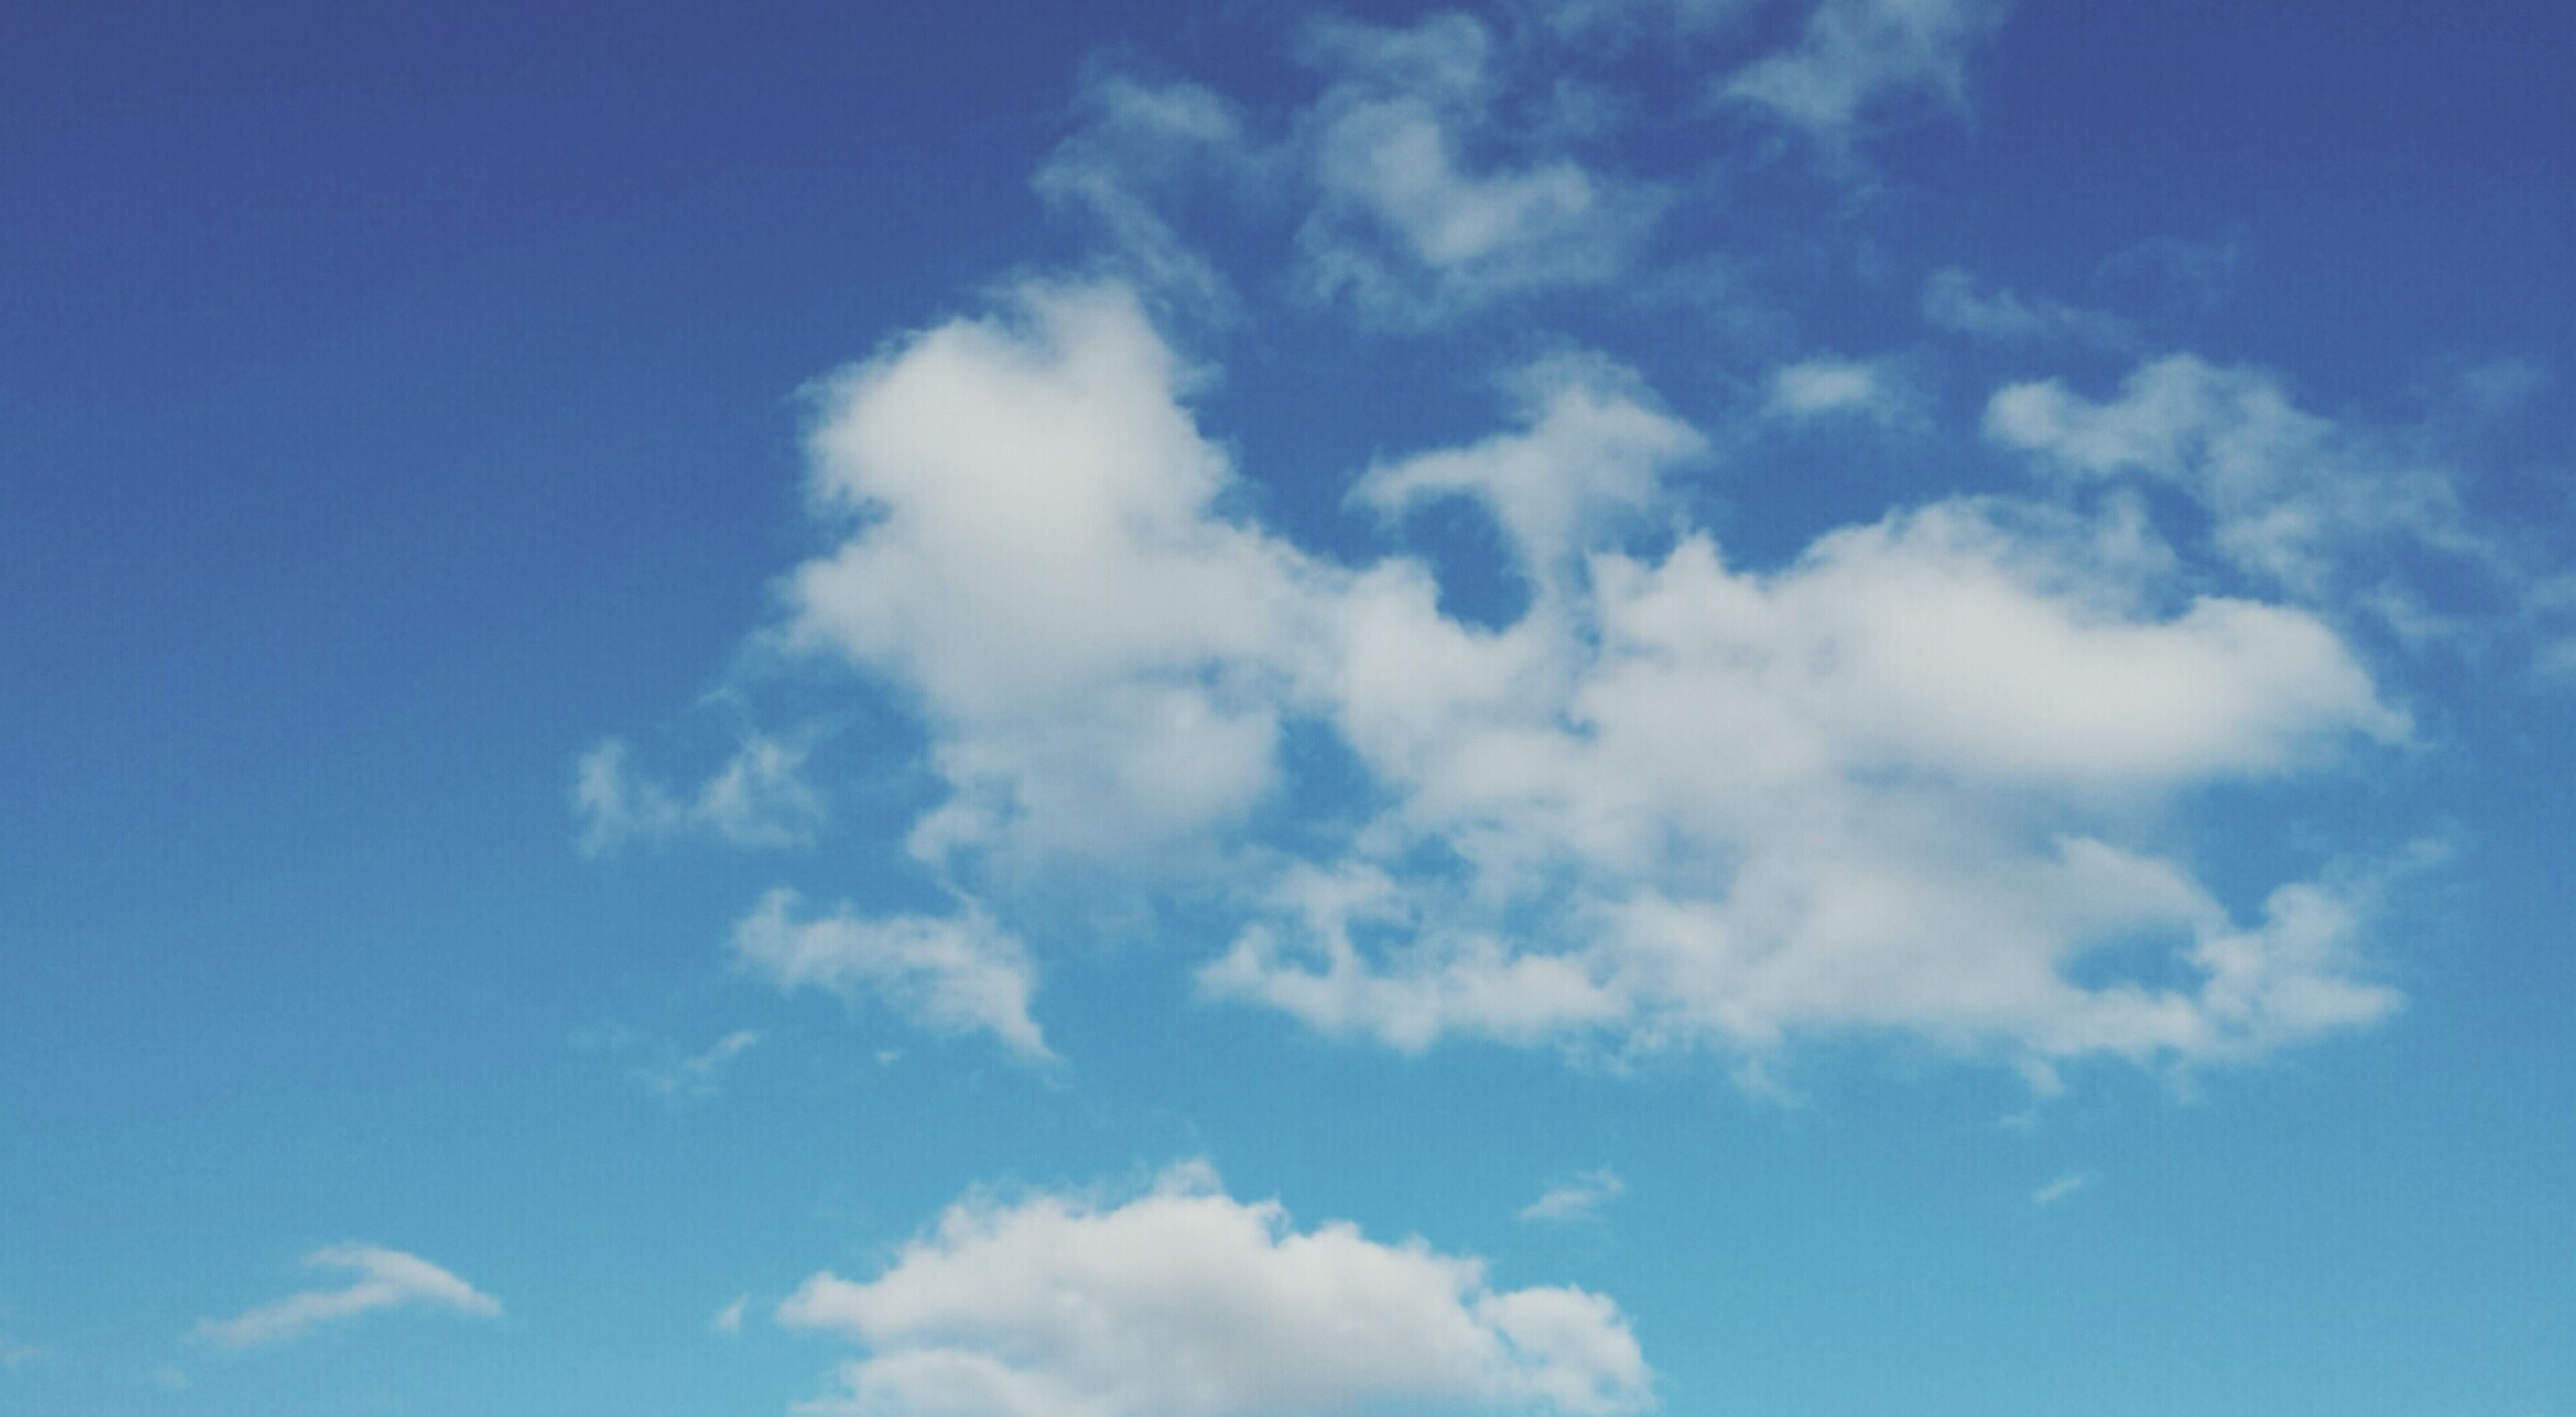 blue, low angle view, sky, beauty in nature, cloud - sky, tranquility, nature, sky only, scenics, tranquil scene, cloud, white color, backgrounds, day, outdoors, idyllic, no people, cloudscape, cloudy, full frame